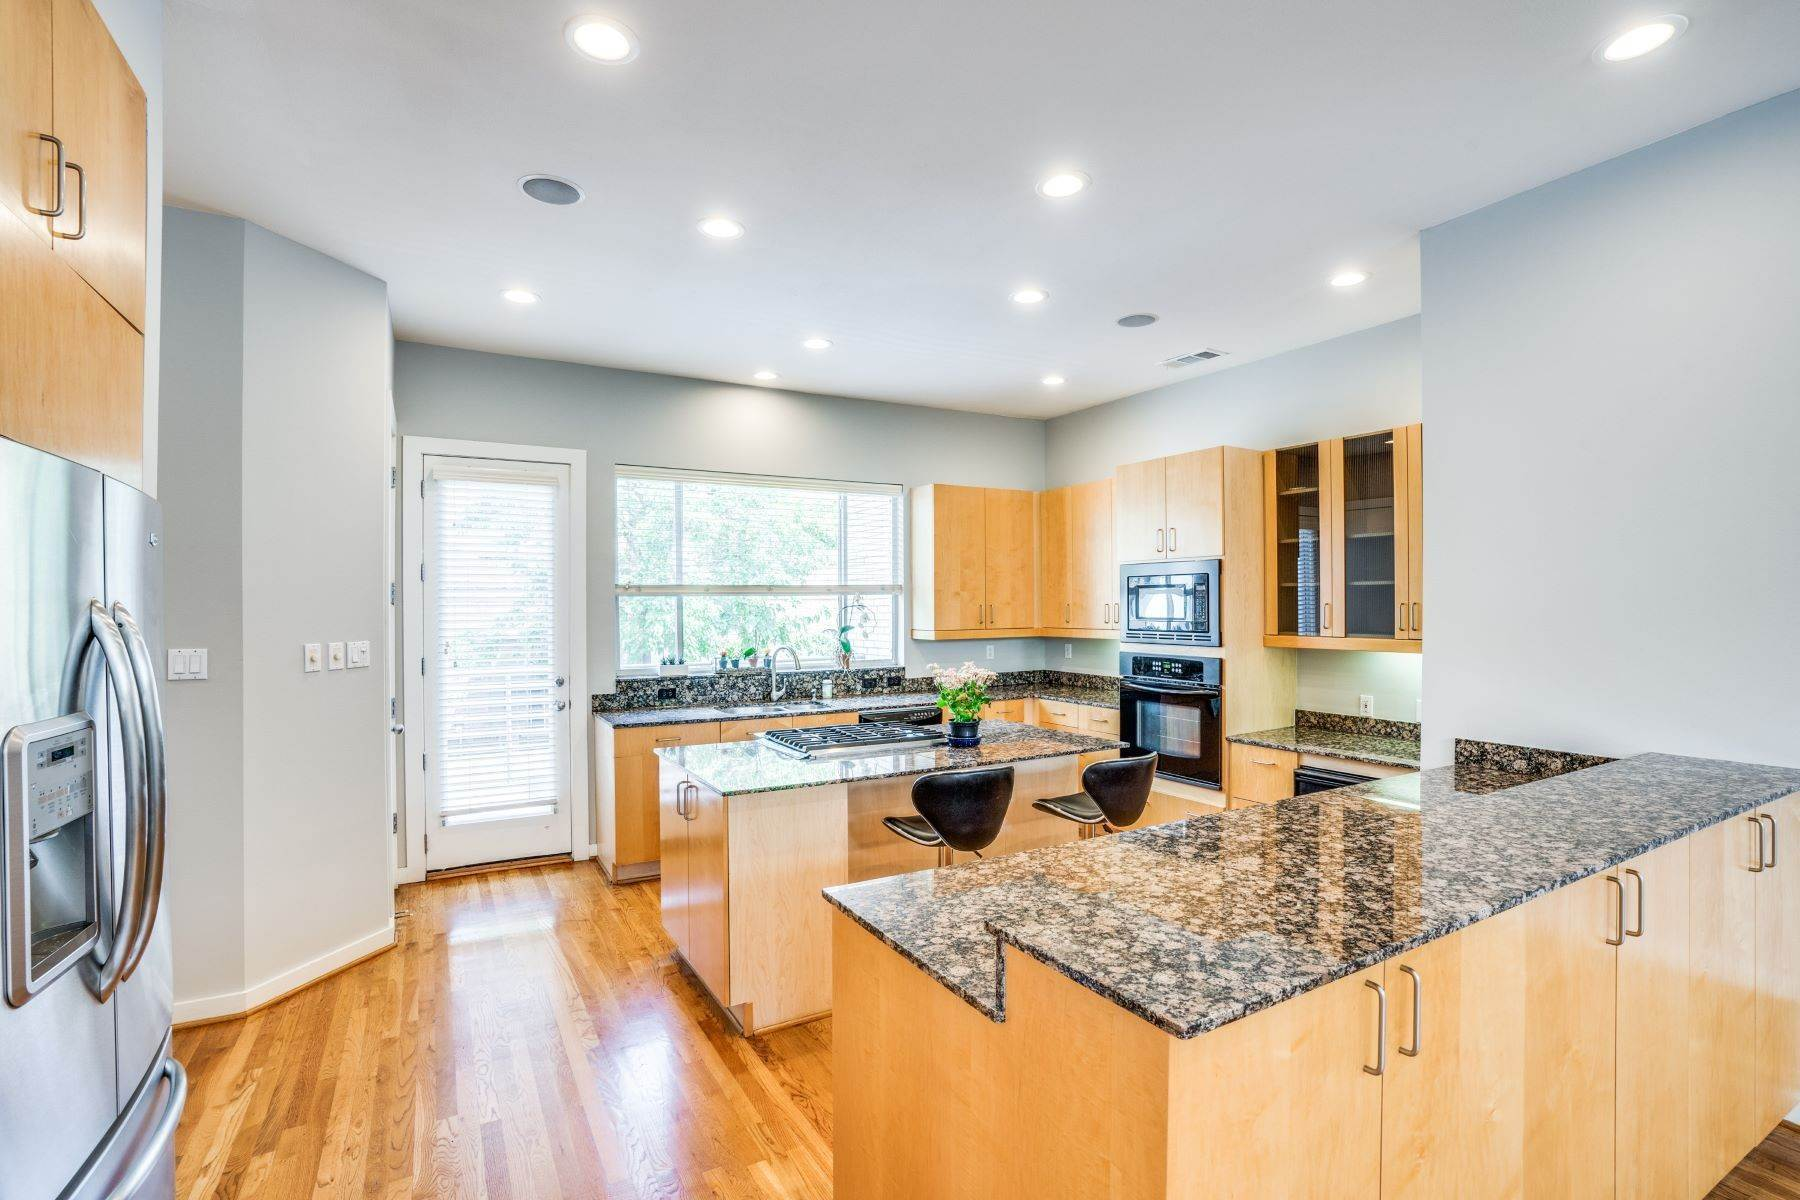 townhouses for Sale at Clean, Contemporary, Open Concept 3-Bedroom Townhouse 3925 Gilbert Avenue, #C Dallas, Texas 75219 United States